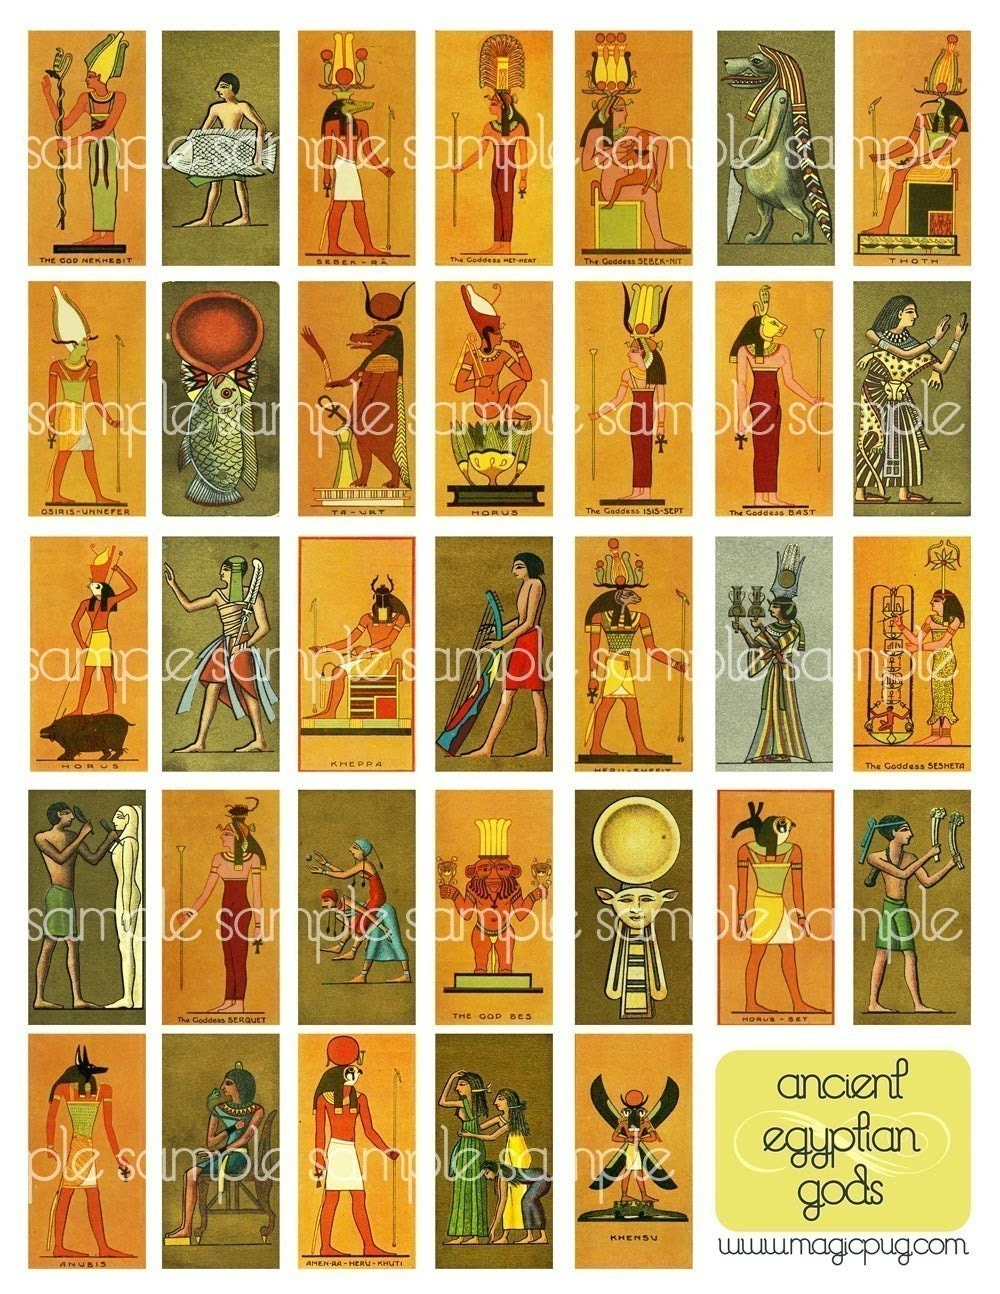 gods and goddess of ancient egypt List of mythological egyptian gods includes detailed information on deities that were observed in ancient egypt, such as anubis, ra, and osiris.